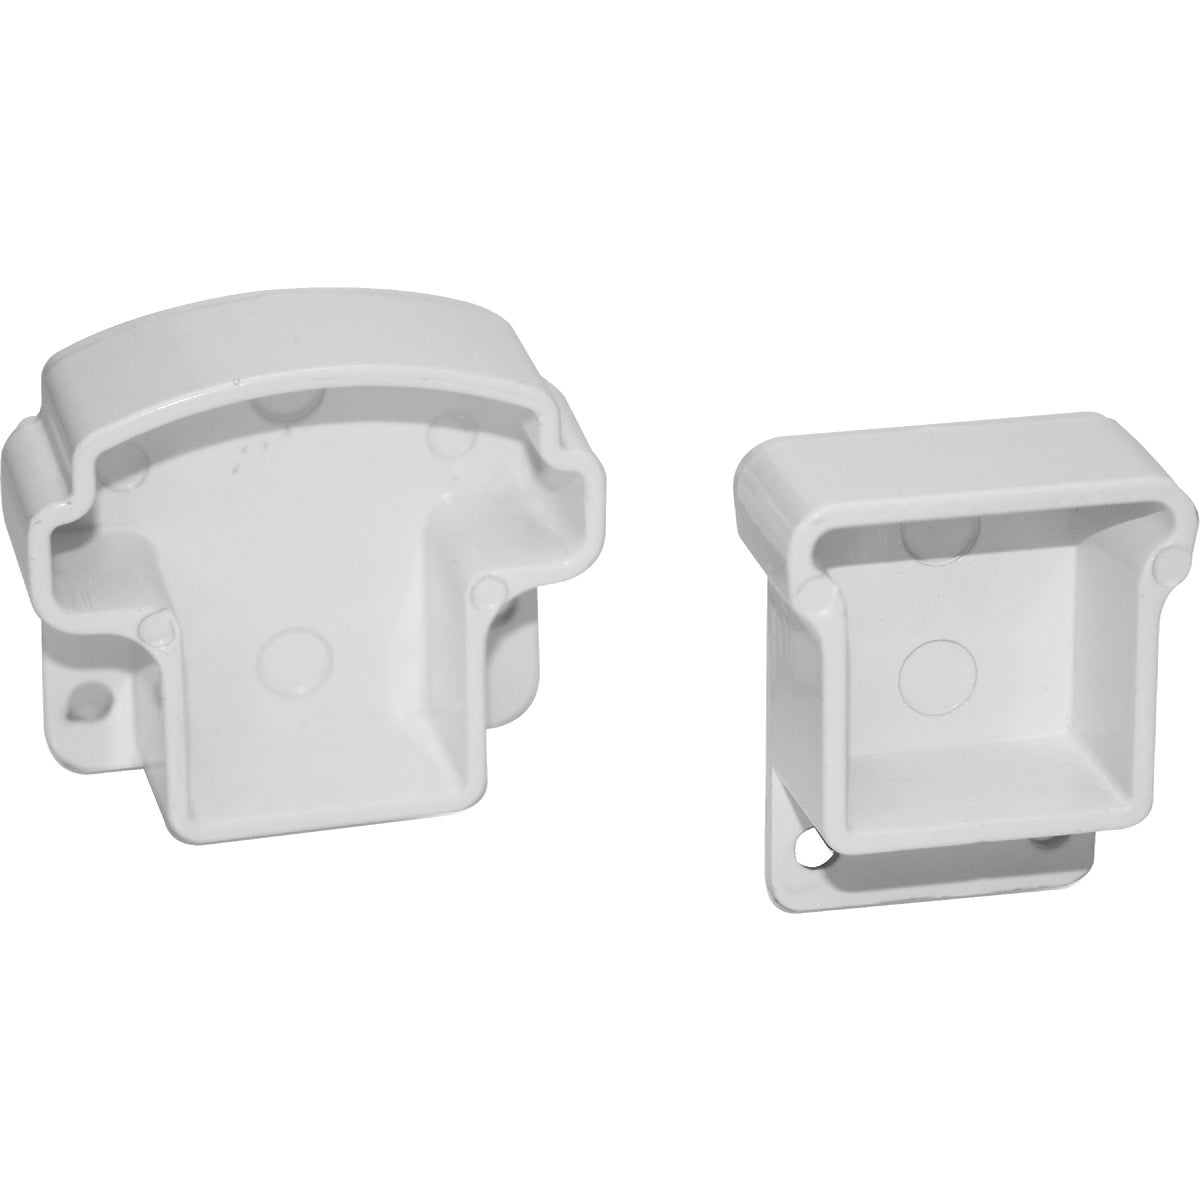 WHITE MOUNTING BRACKET